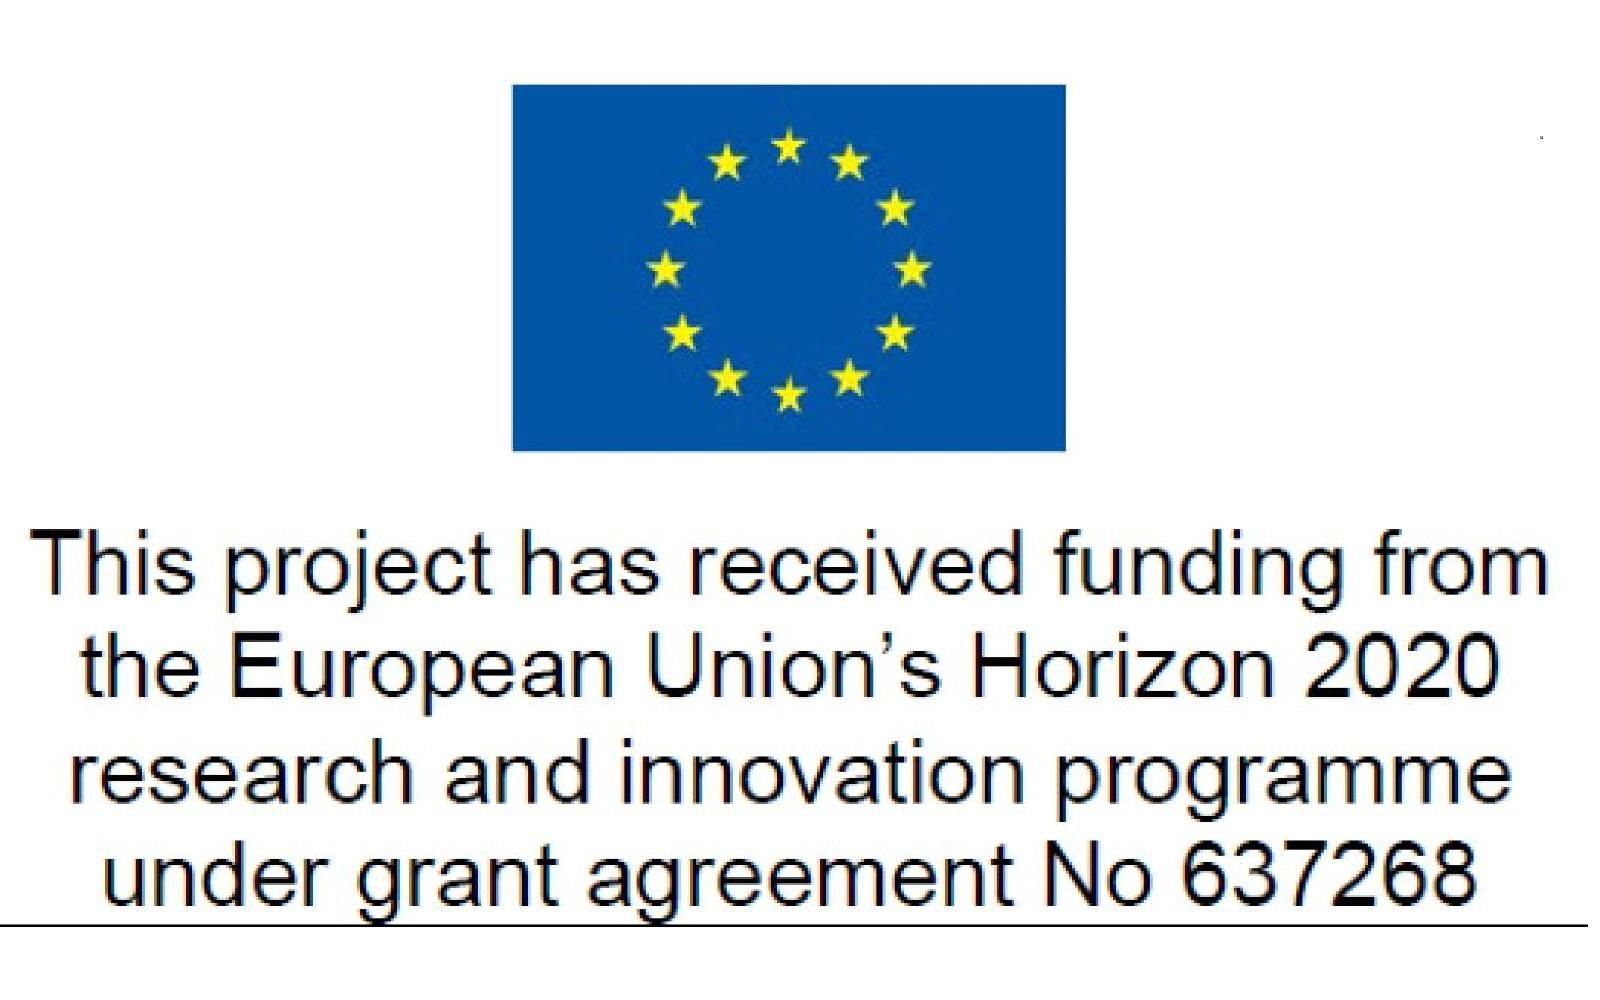 This project has received funding from the European Union's Horizon 2020 research and innovation programme under grant agreement No 637268